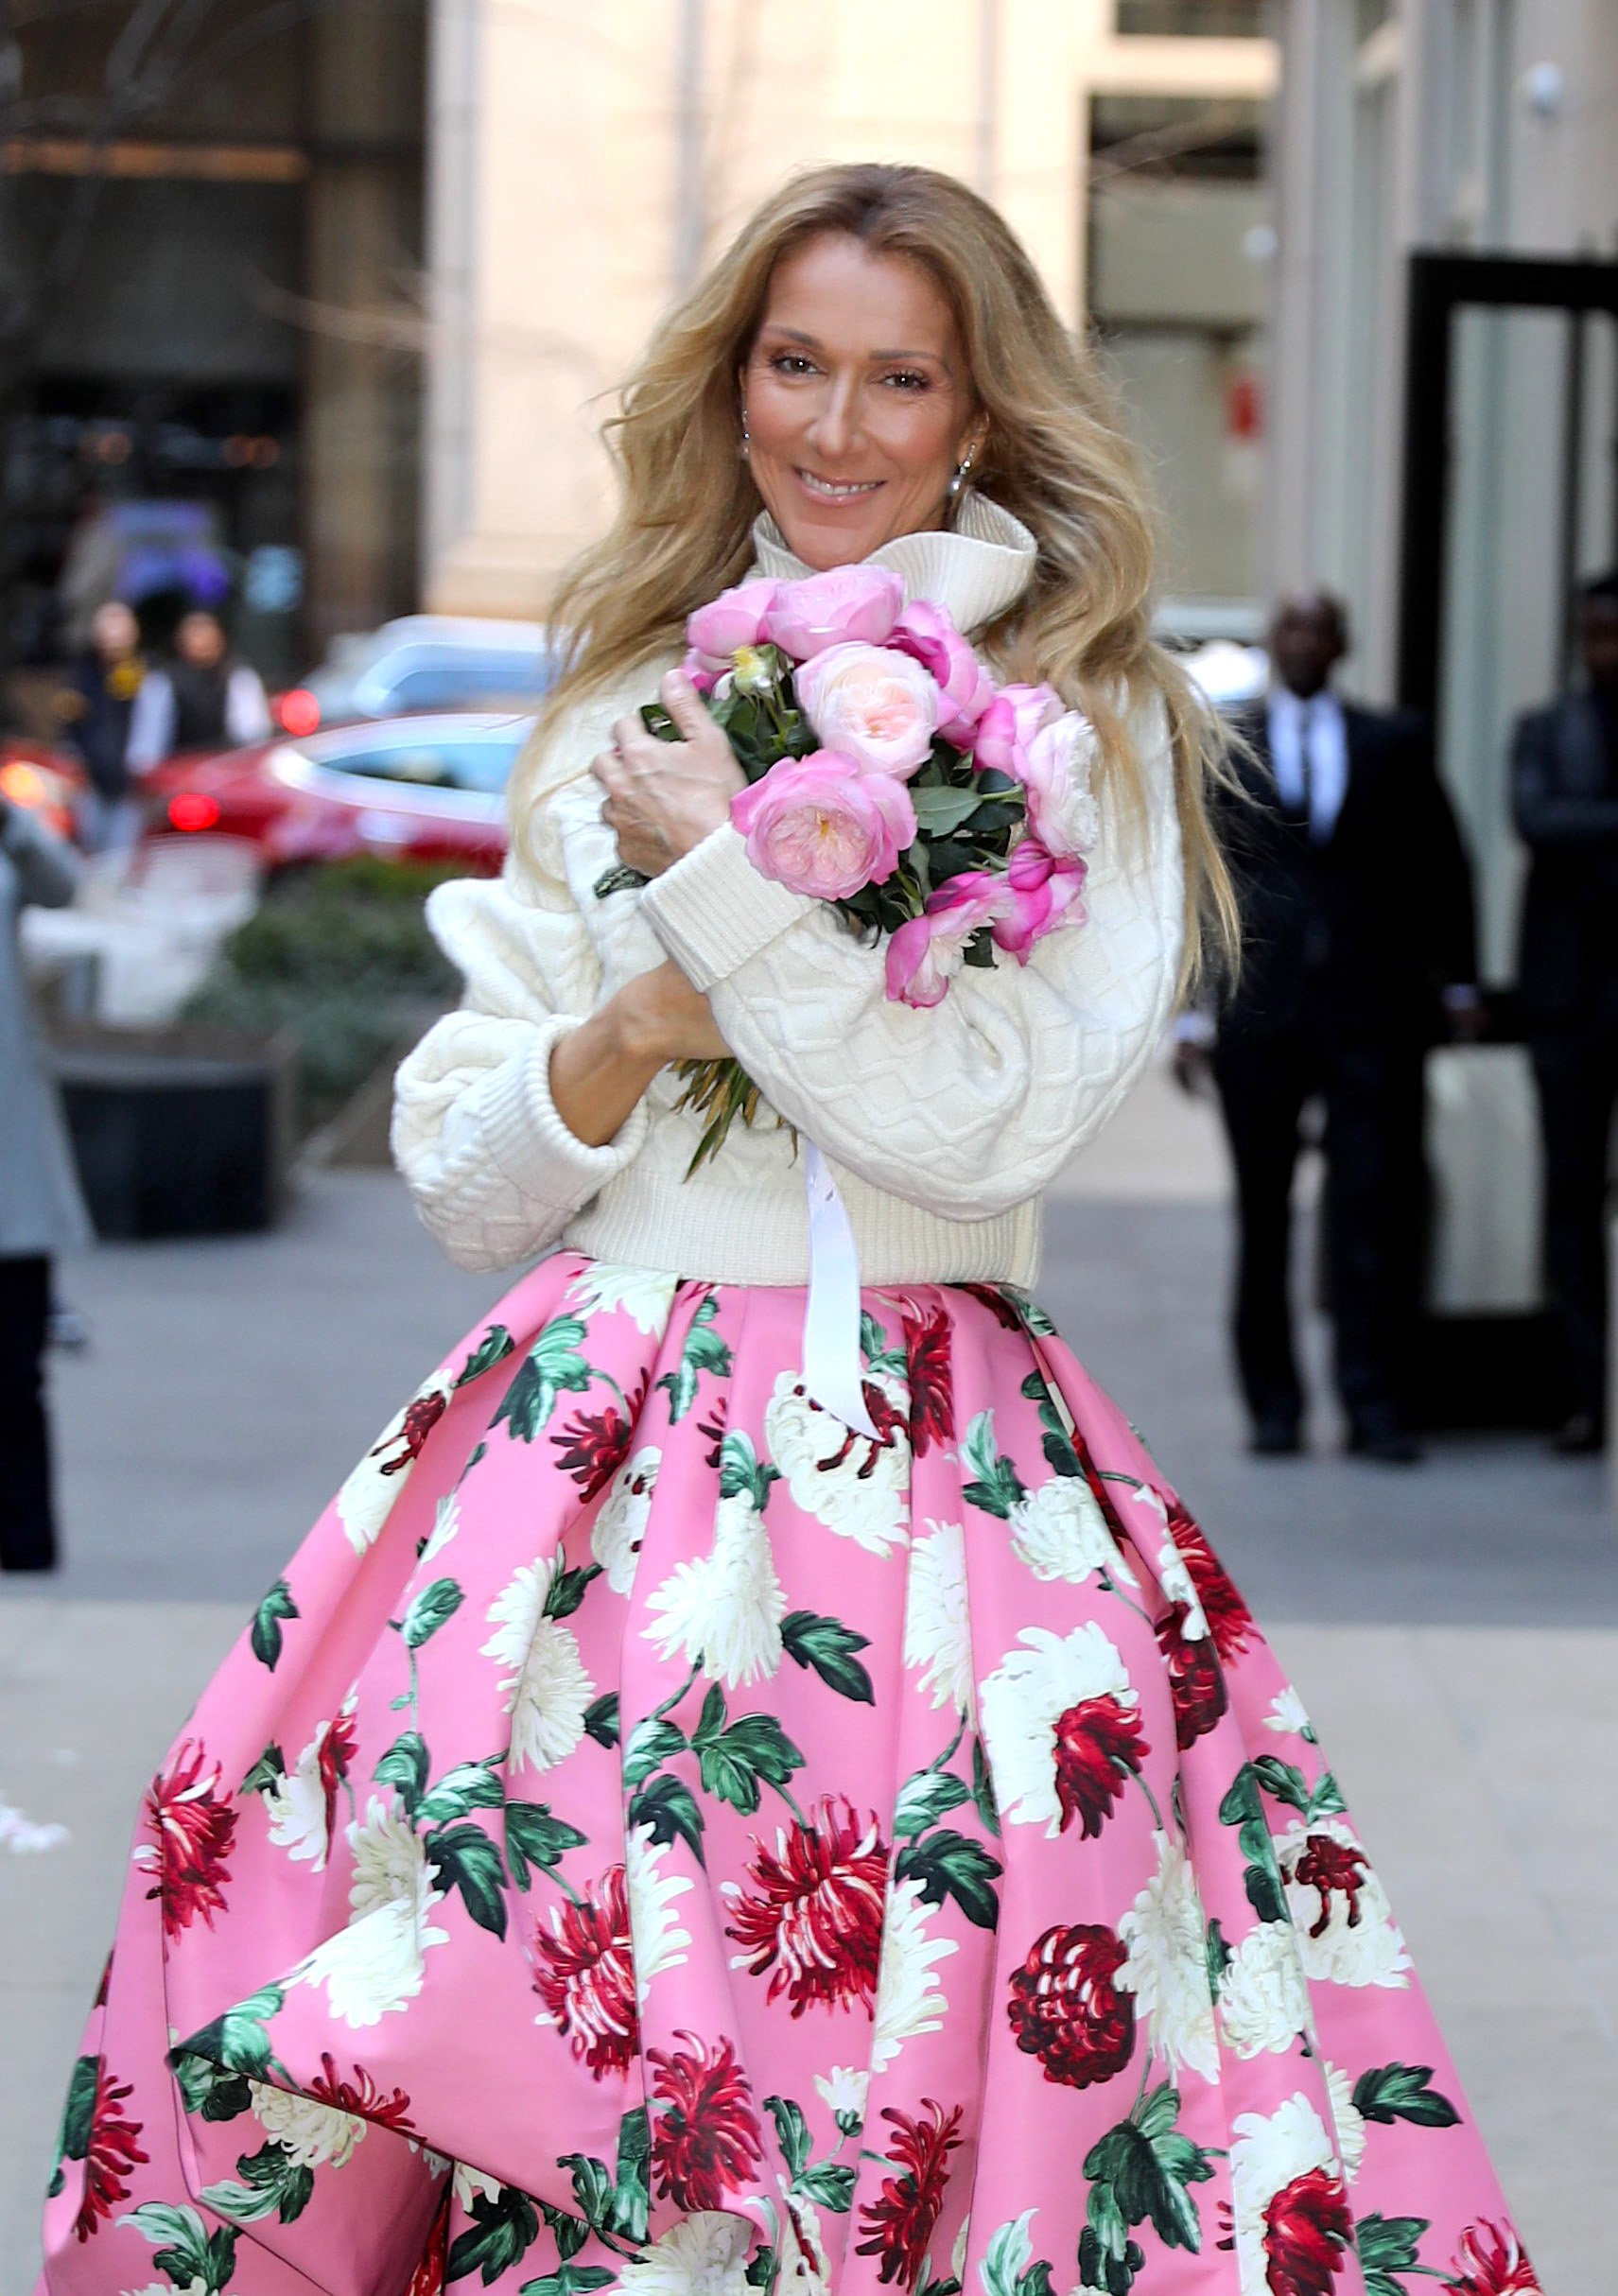 Celine Dion seen walking on the streets of New York holding flowers, 2020 | Photo: Getty Images